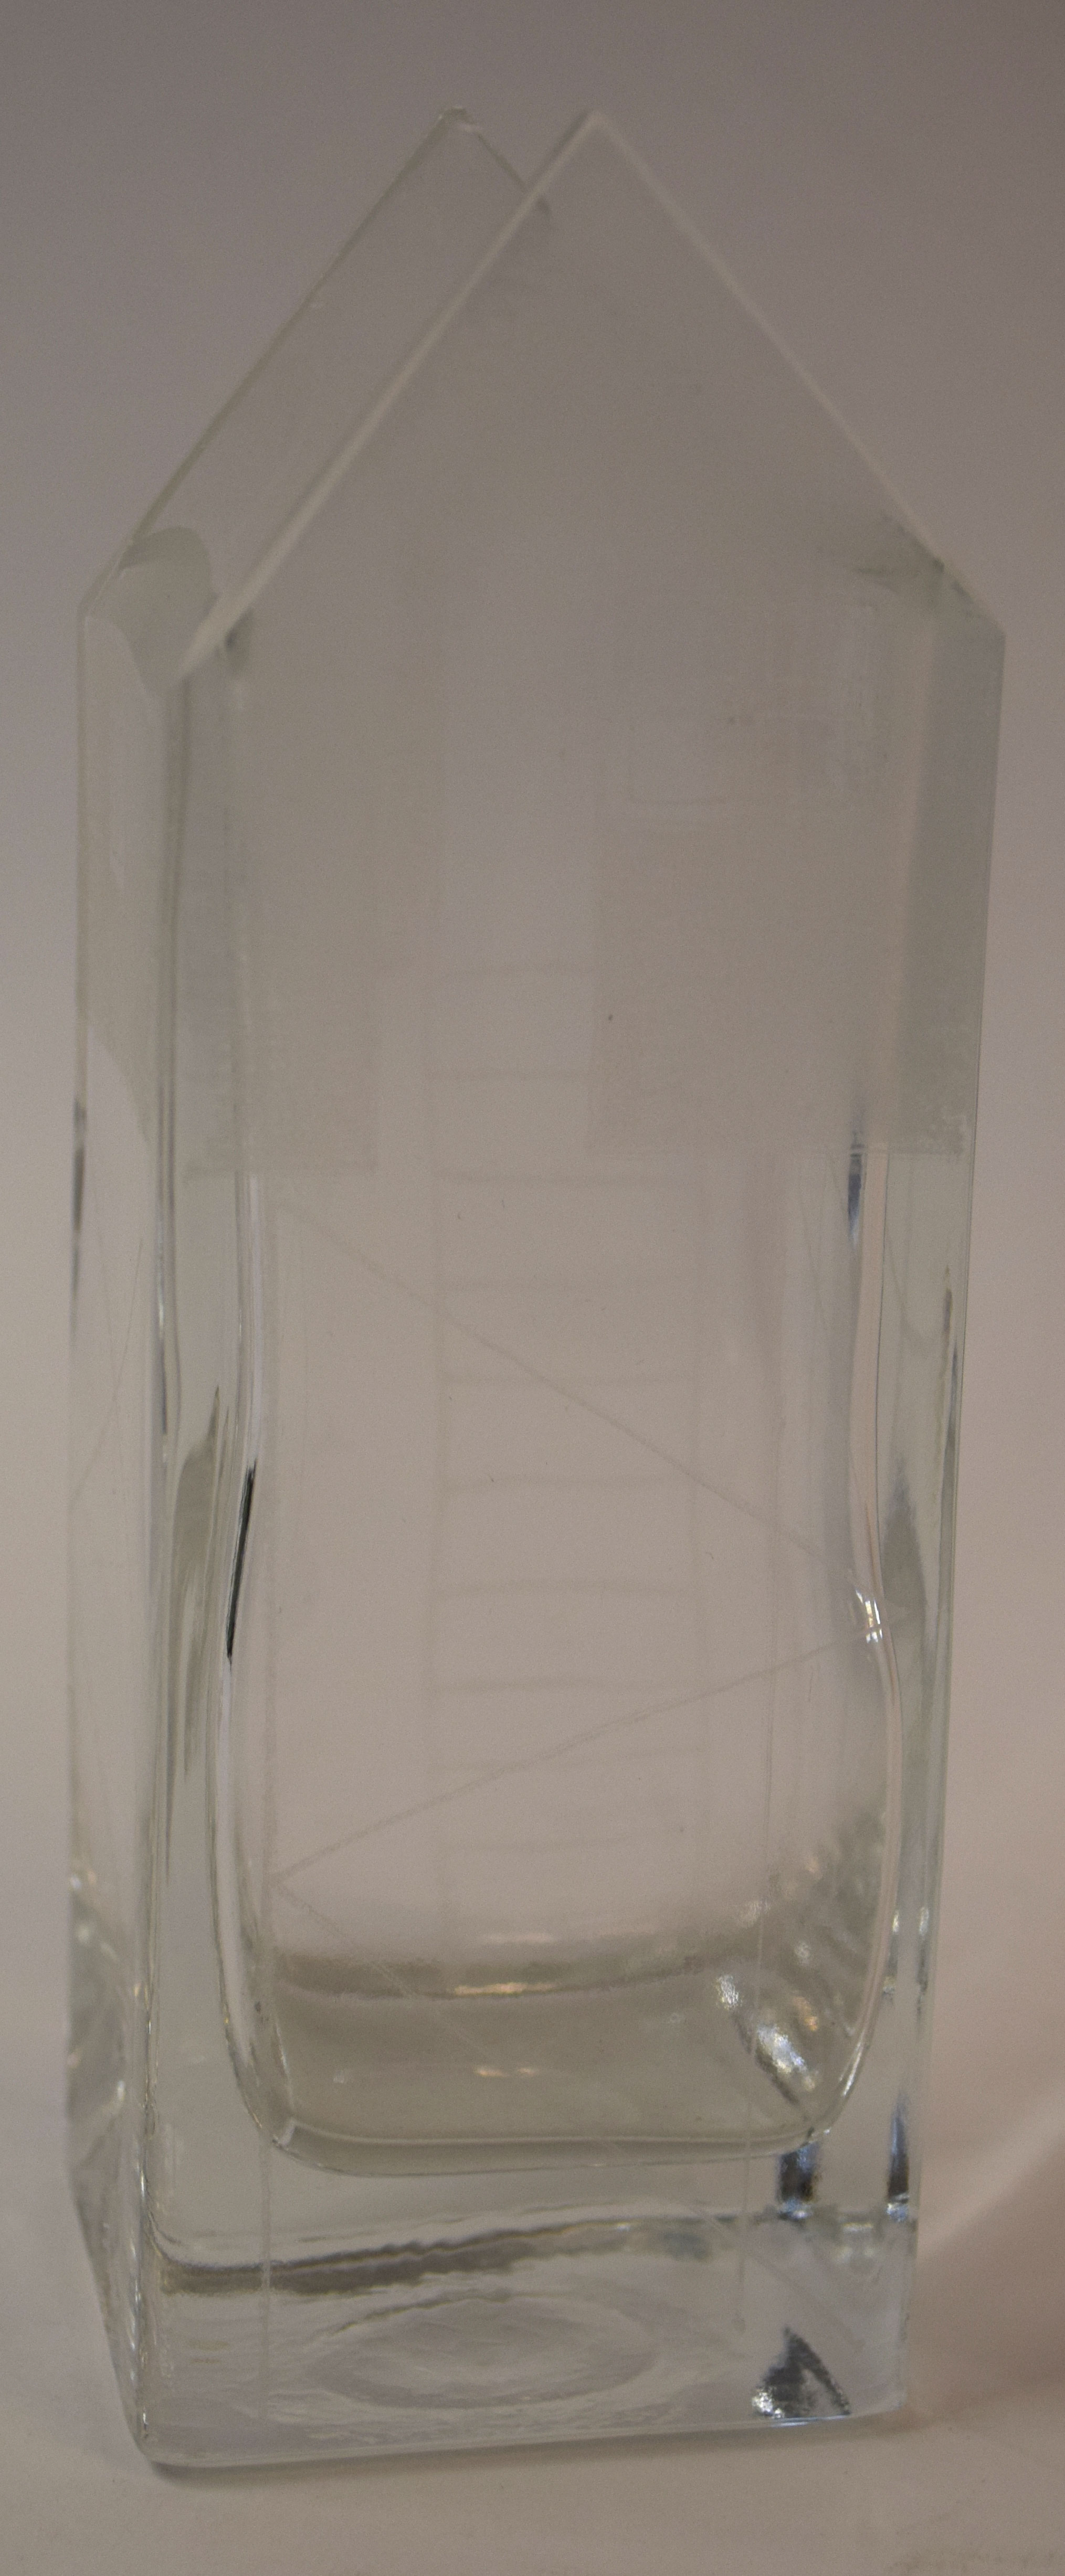 Roger Phillippo (20th century), small glass vase engraved and modelled as a beach hut, 16cm high - Image 2 of 2